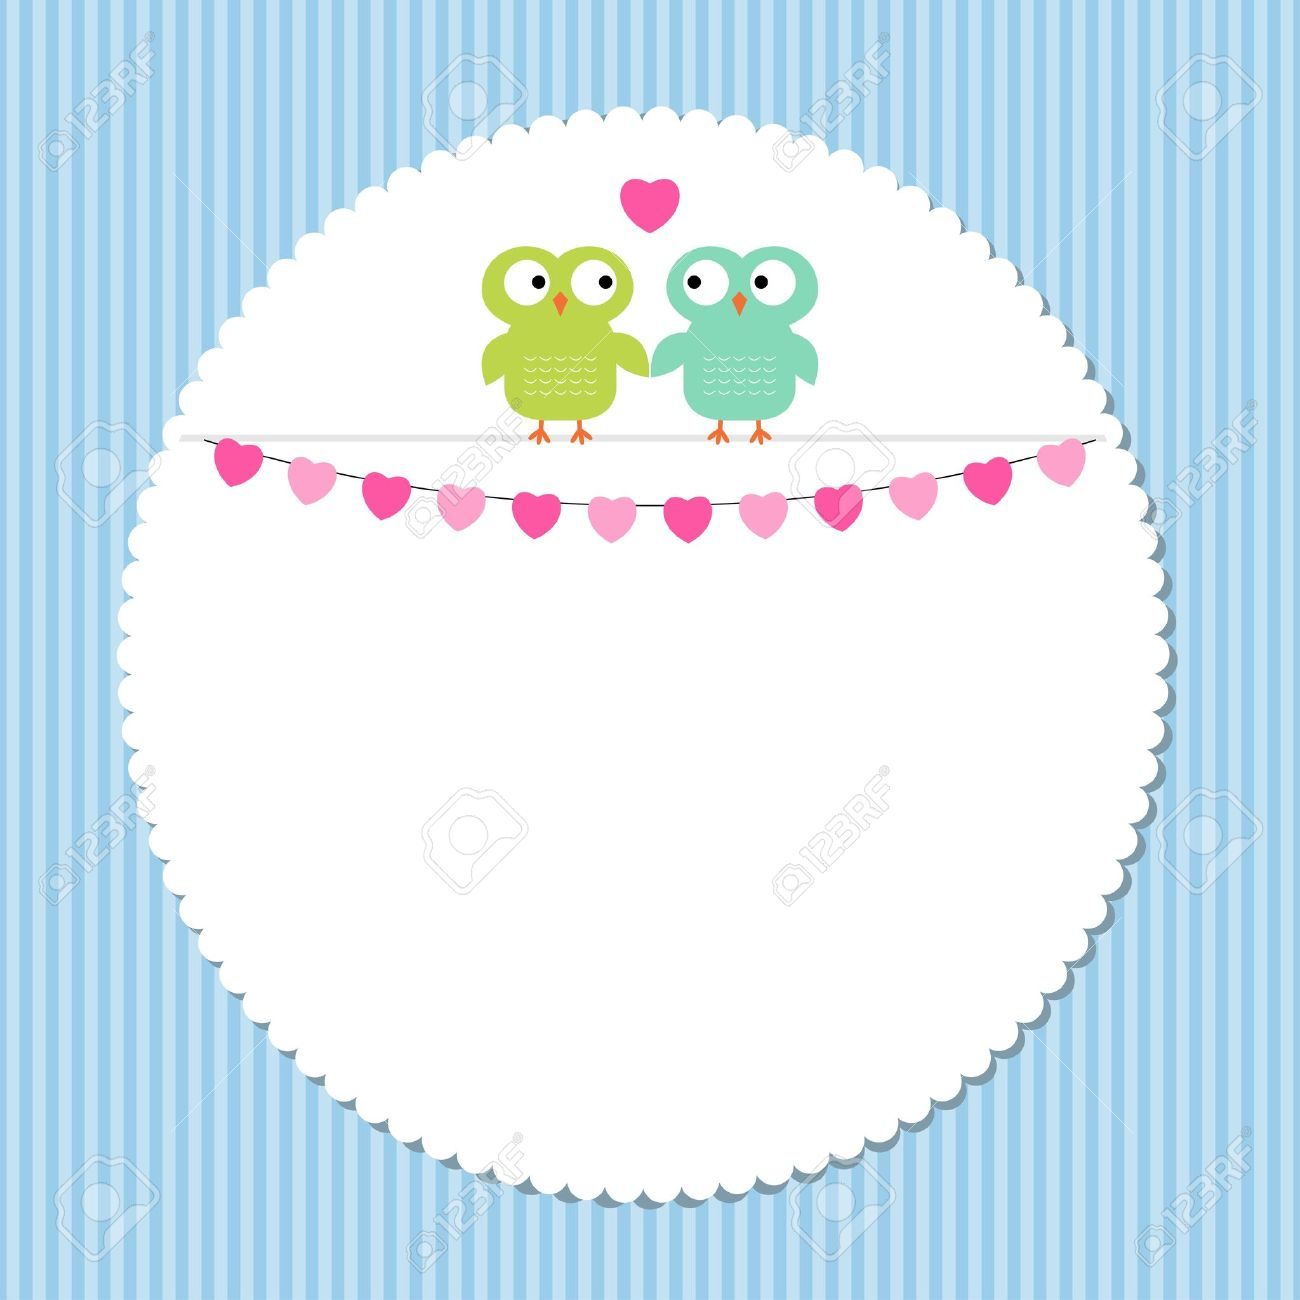 Owl Love Frame Royalty Free Cliparts, Vectors, And Stock ...